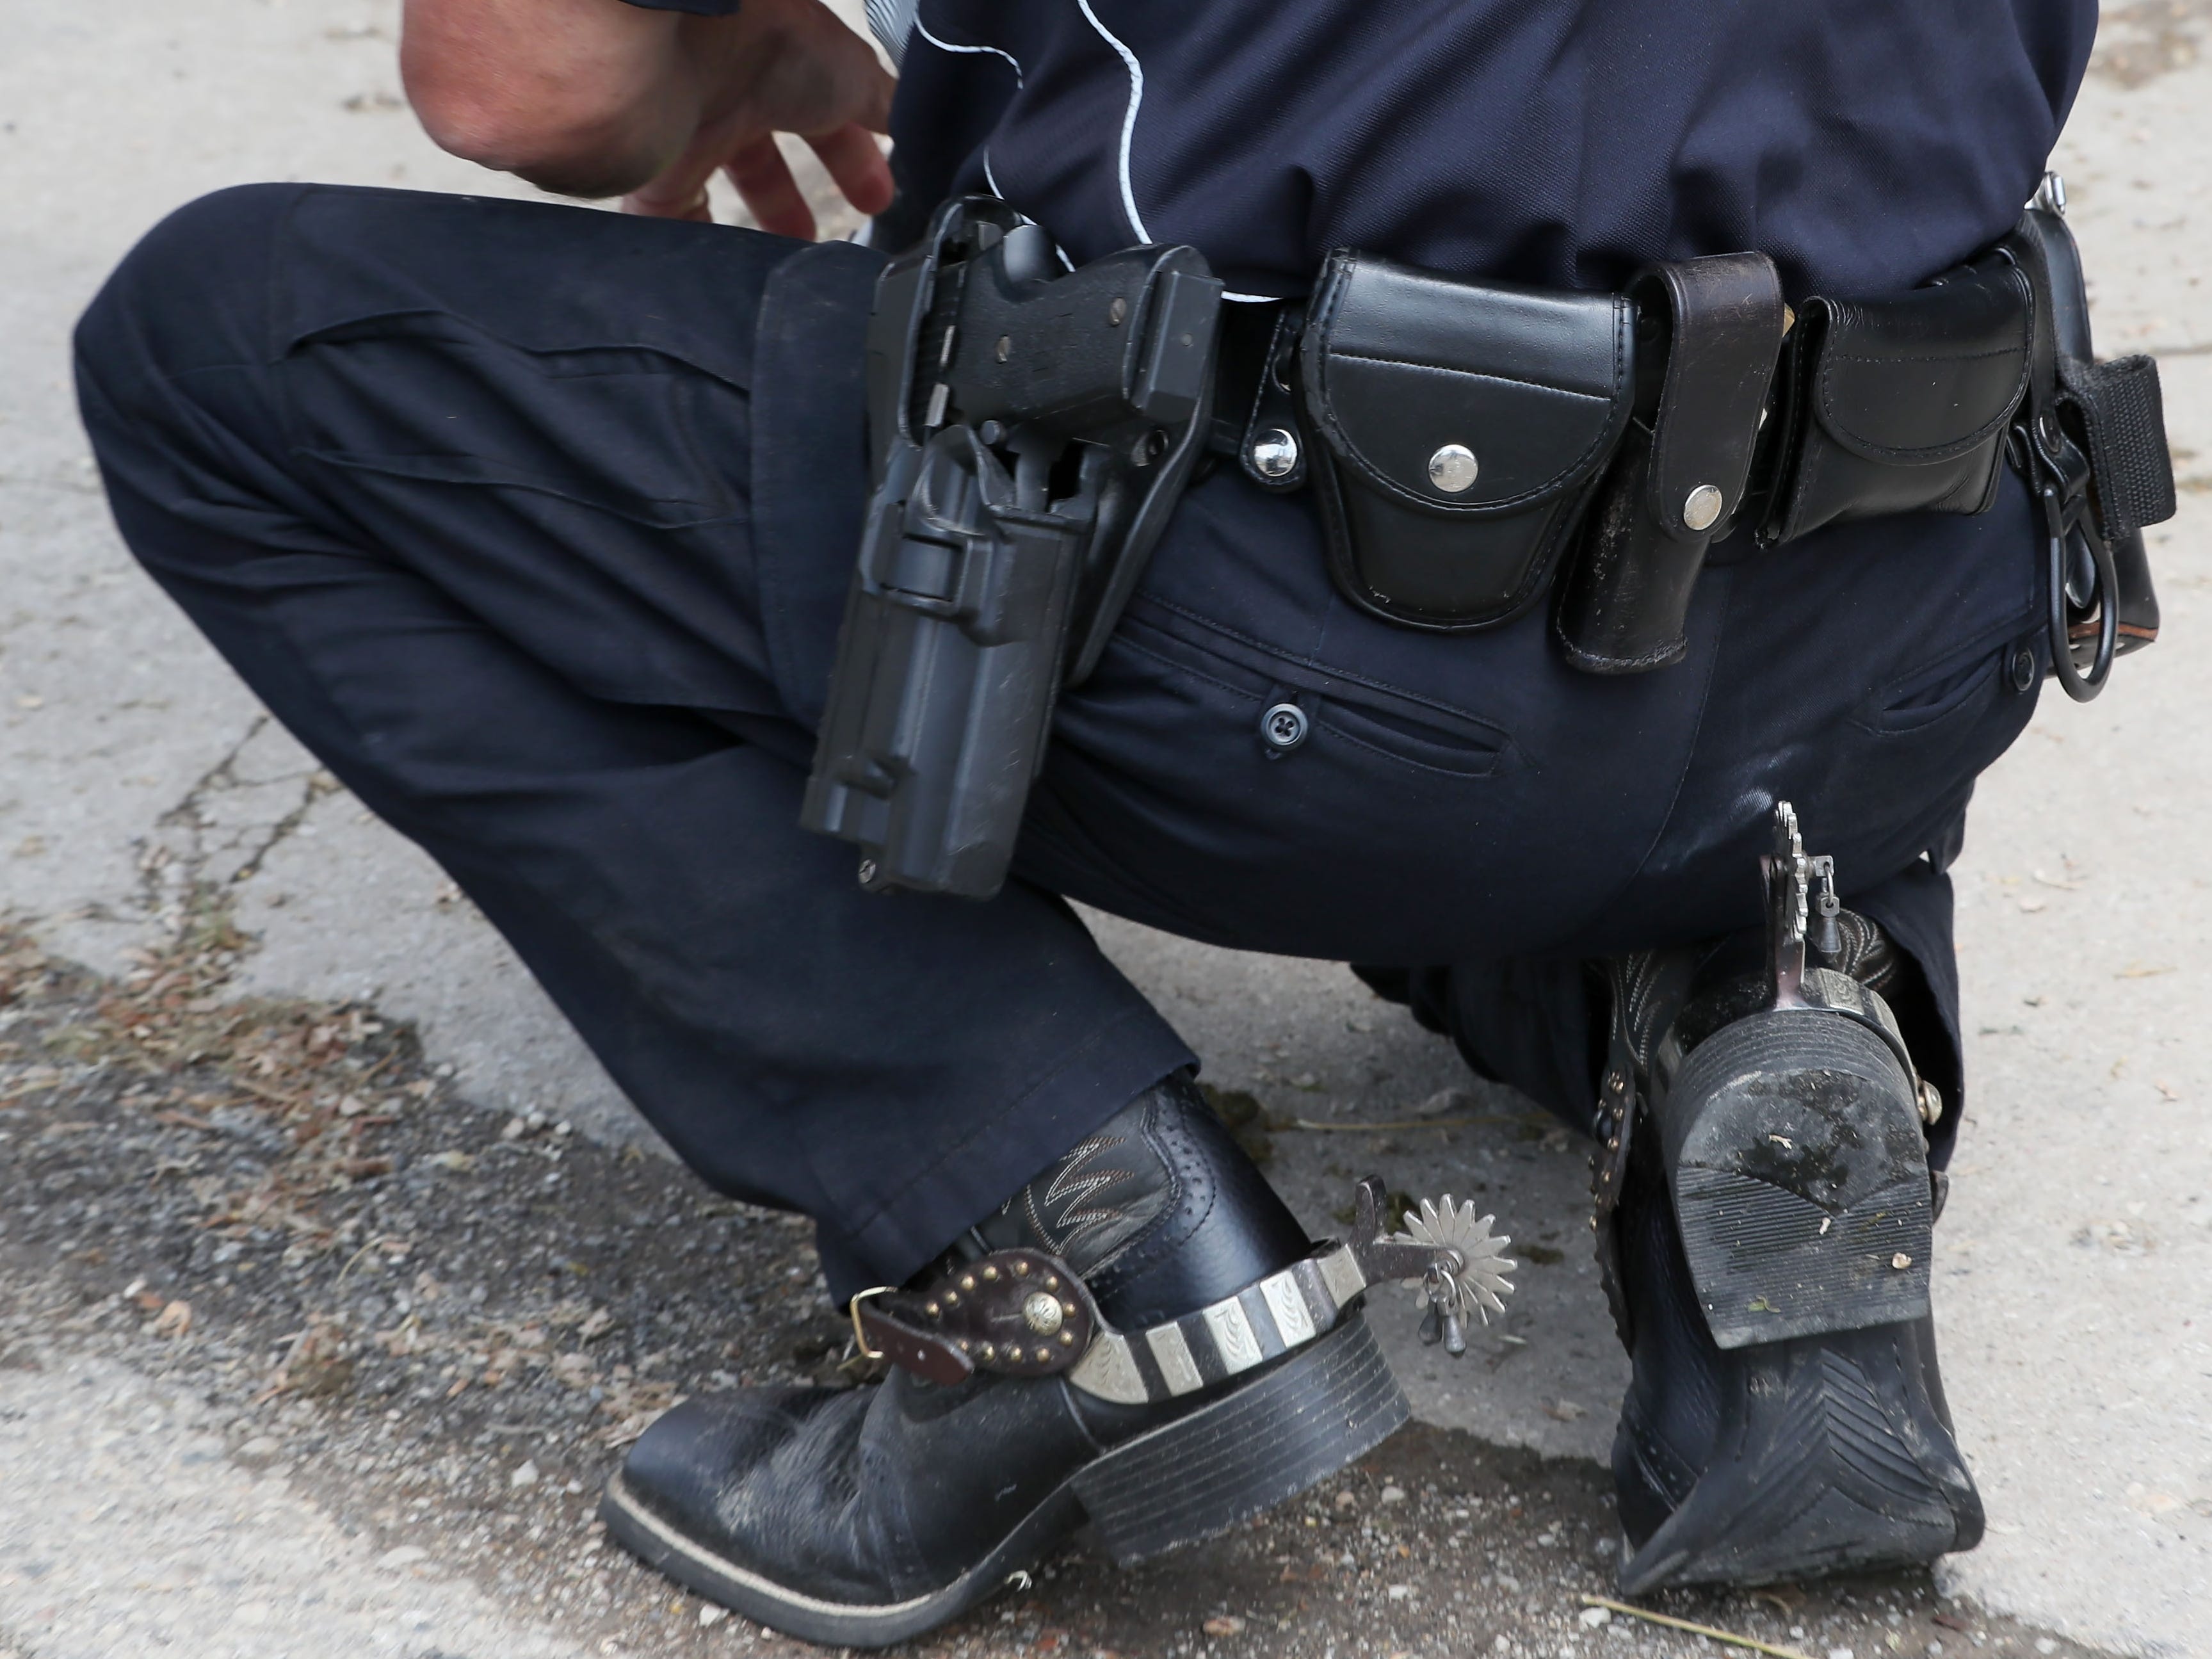 Along with standard law enforcement  gear, this mounted officer has spurs on his boots.